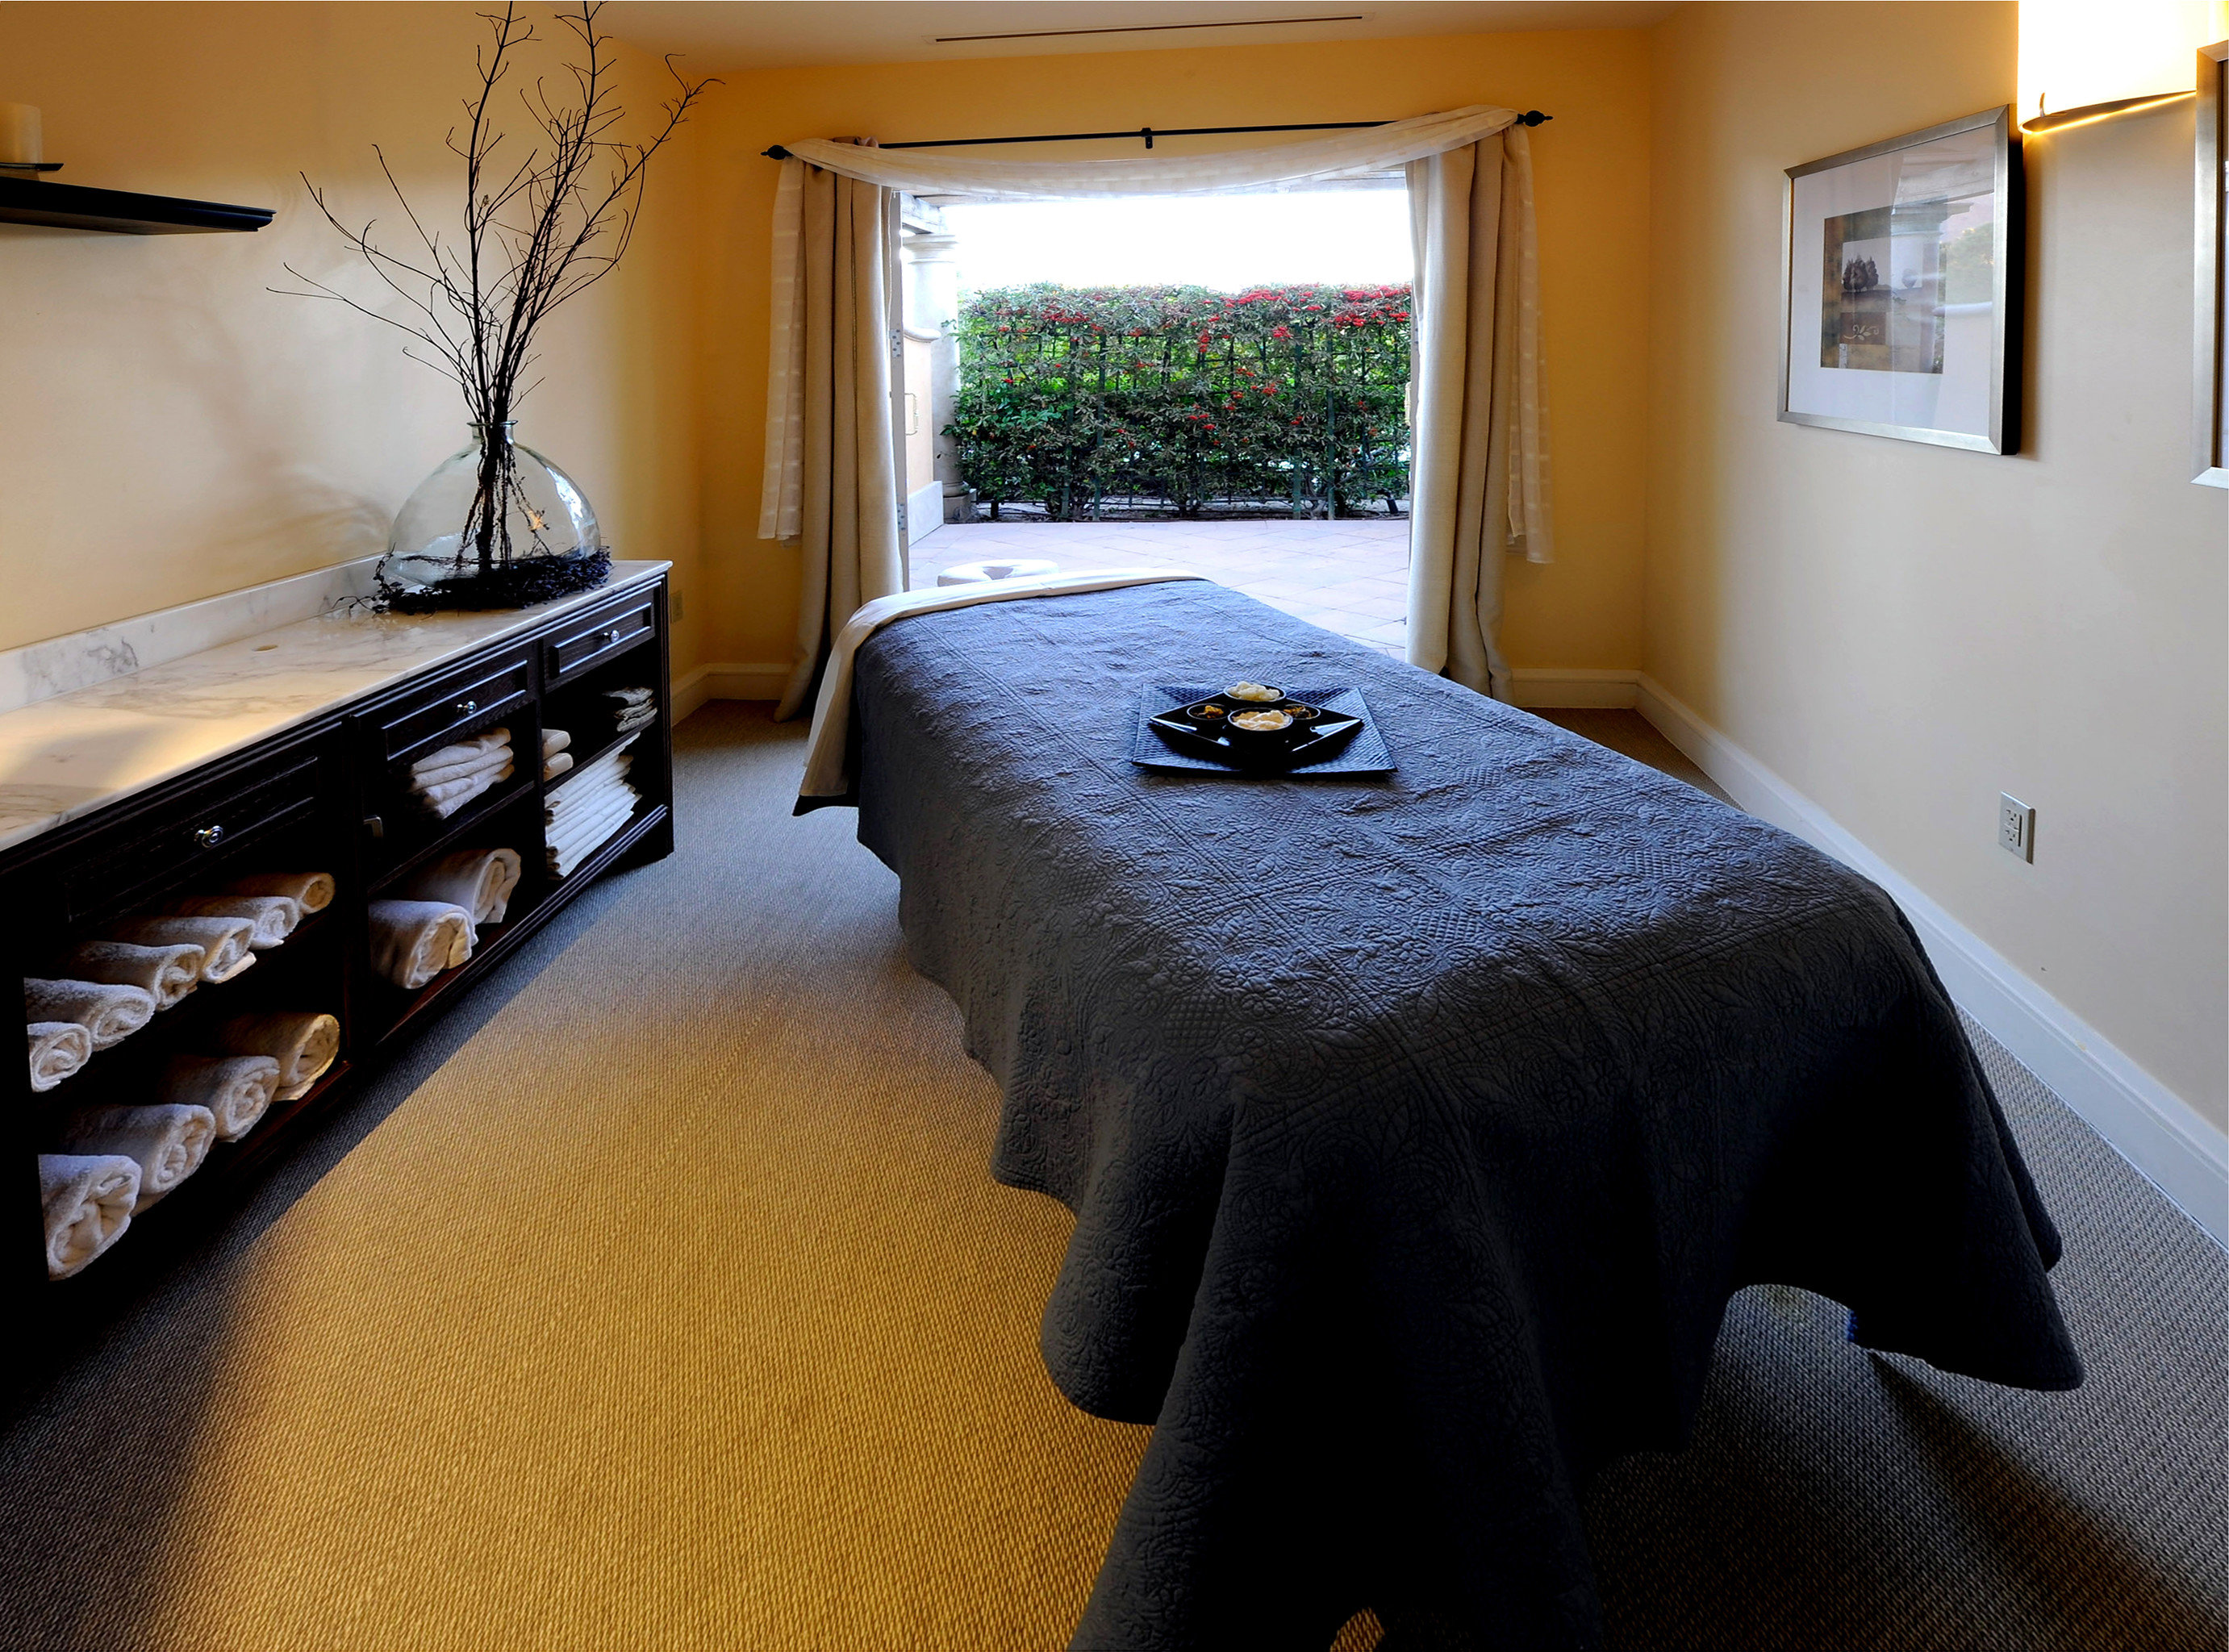 Patio Resort Spa Terrace Wellness house Bedroom home cottage Suite